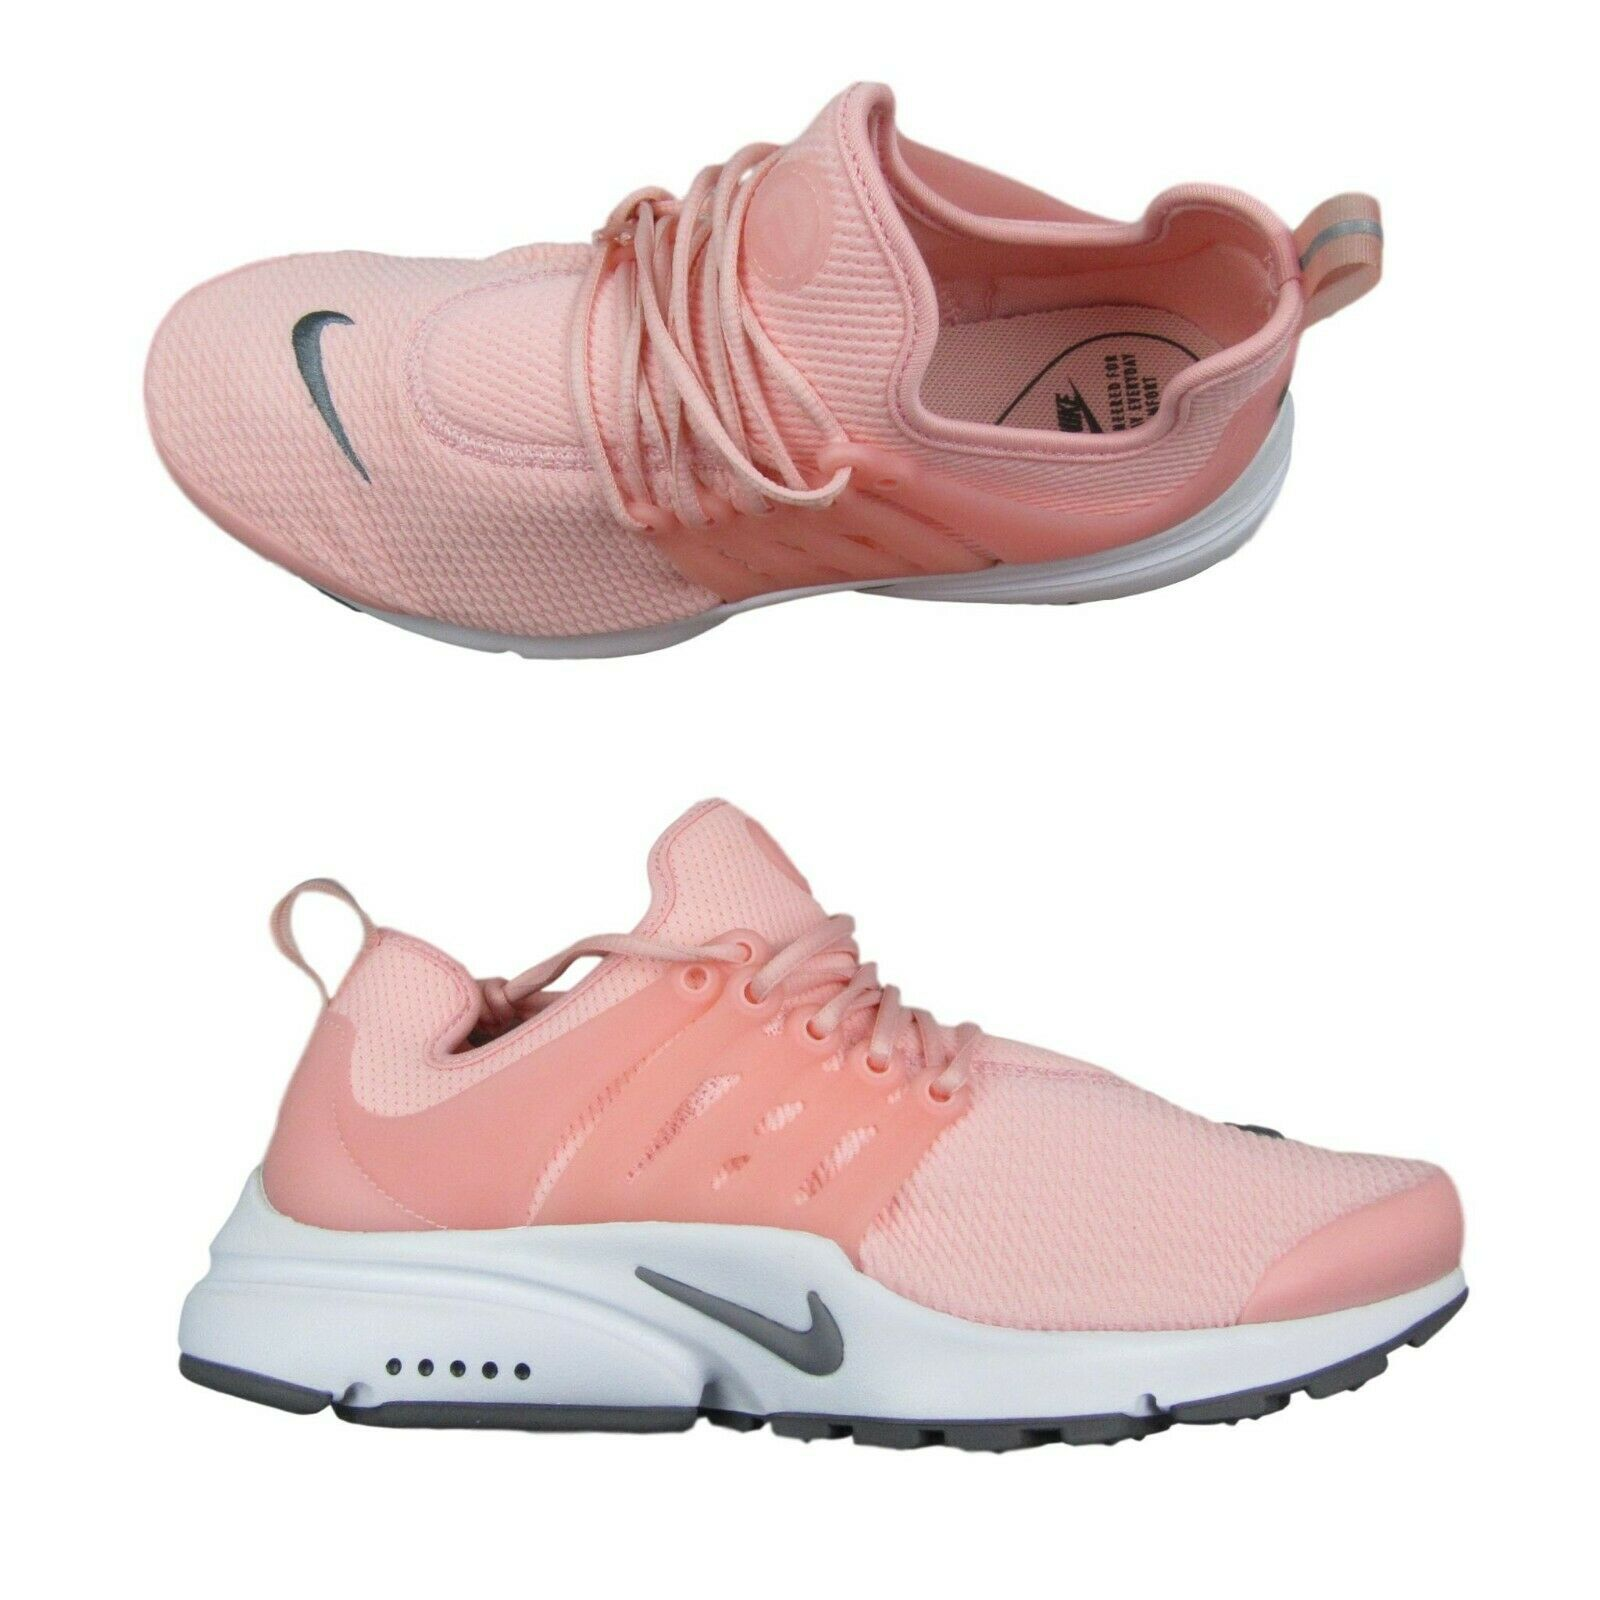 check out c51f5 65dd1 nike-air-presto-running-shoes-womens-size-9-